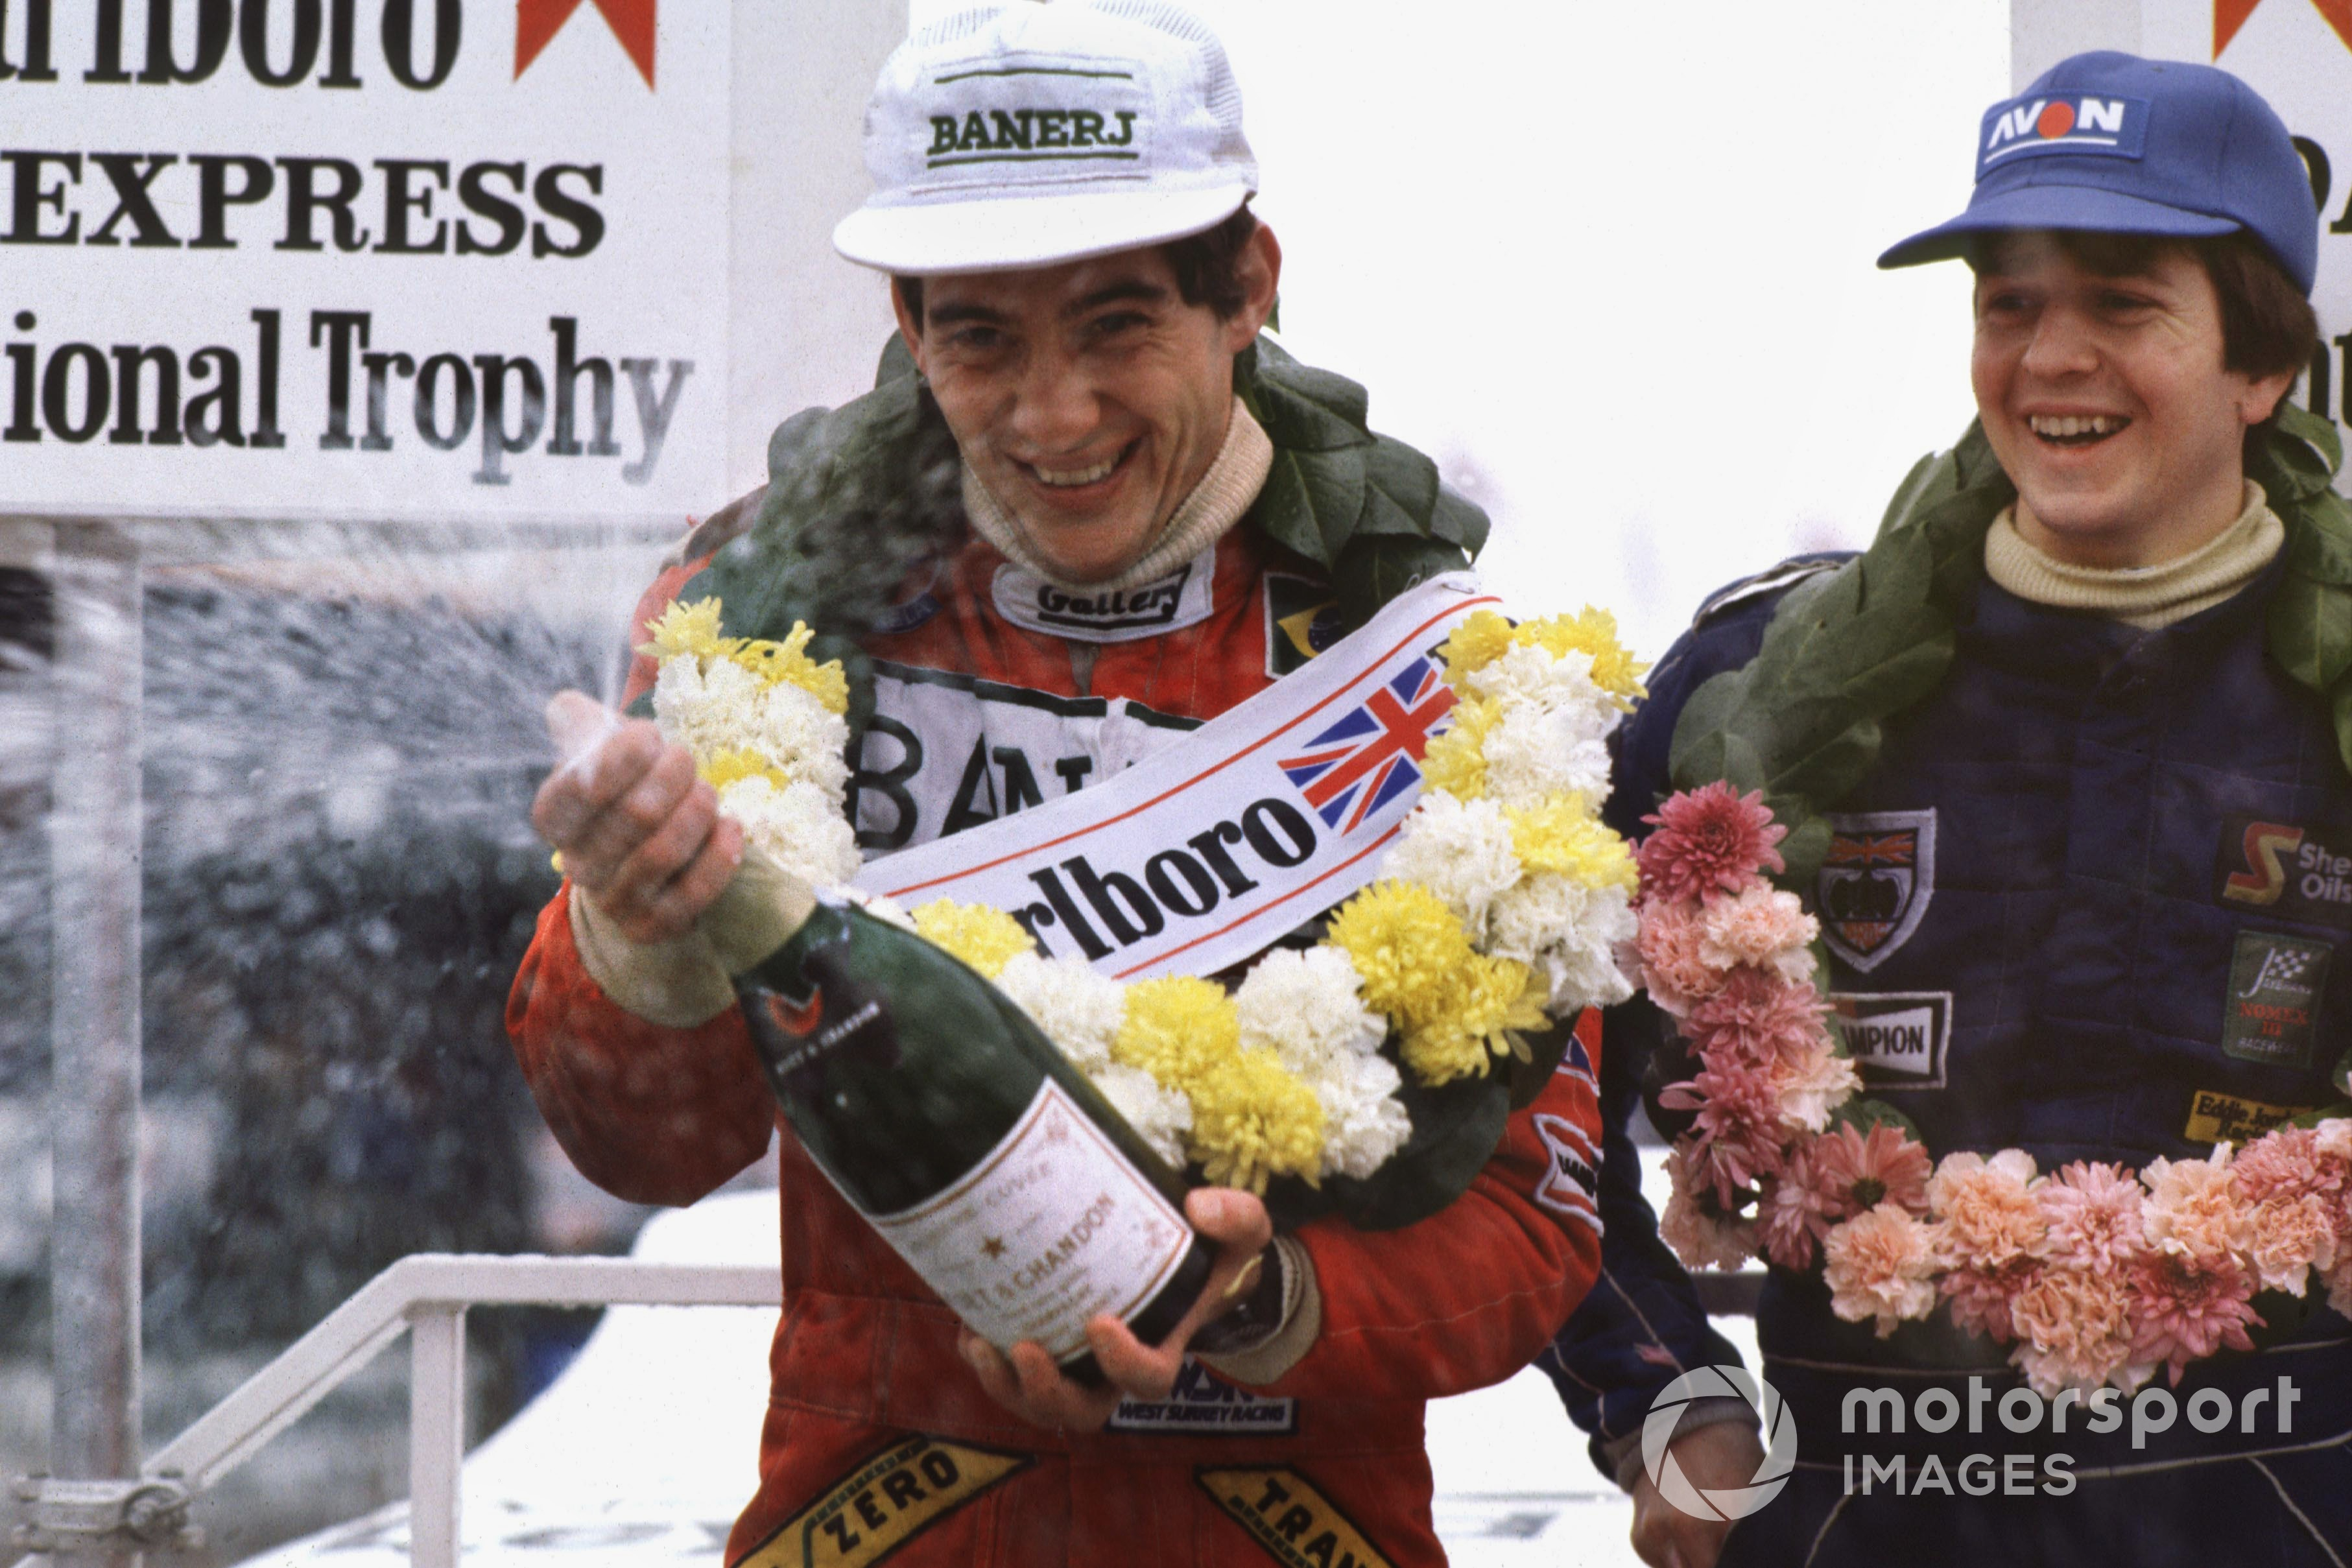 Ayrton Senna and Martin Brundle (both Ralt RT3-Toyota), finished in 1st and 2nd positions respectively, podium.